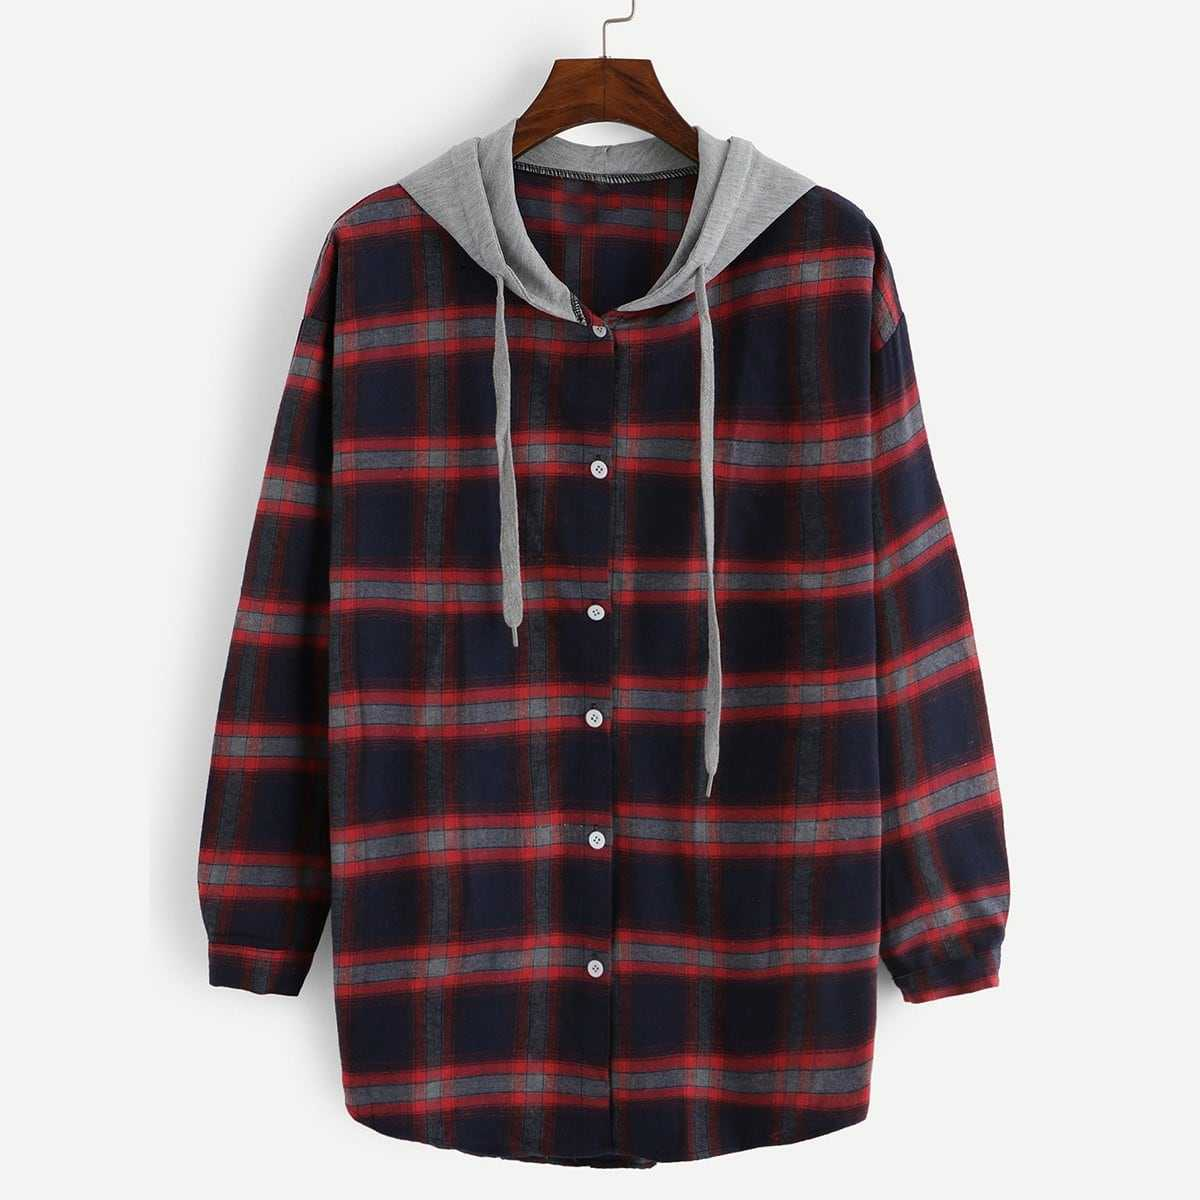 2 In 1 Plaid Hooded Shirt in Multicolor by ROMWE on GOOFASH